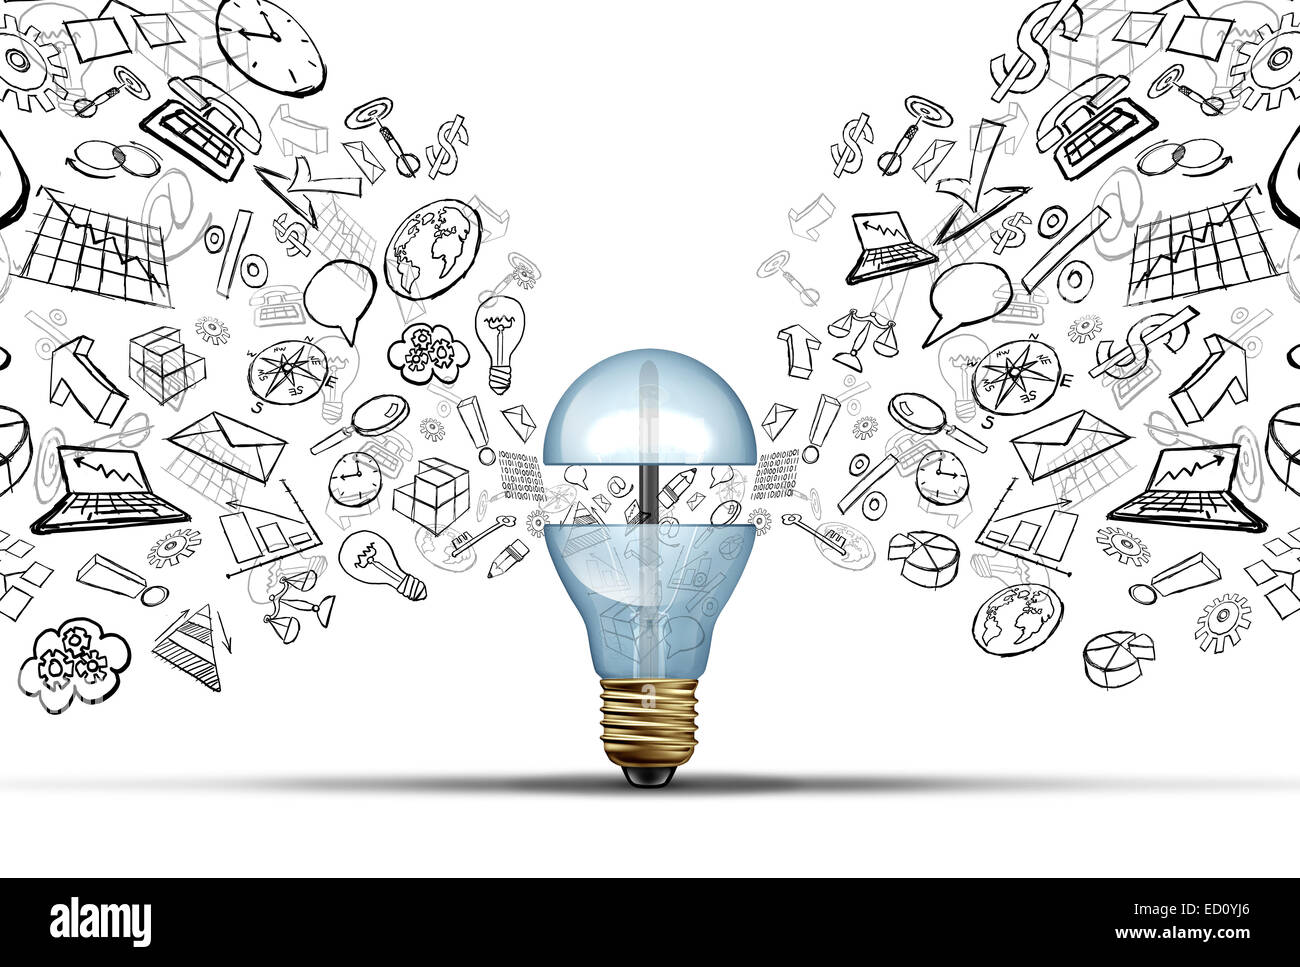 Business innovation ideas concept as an open light bulb with financial and office icons being released as a communication - Stock Image